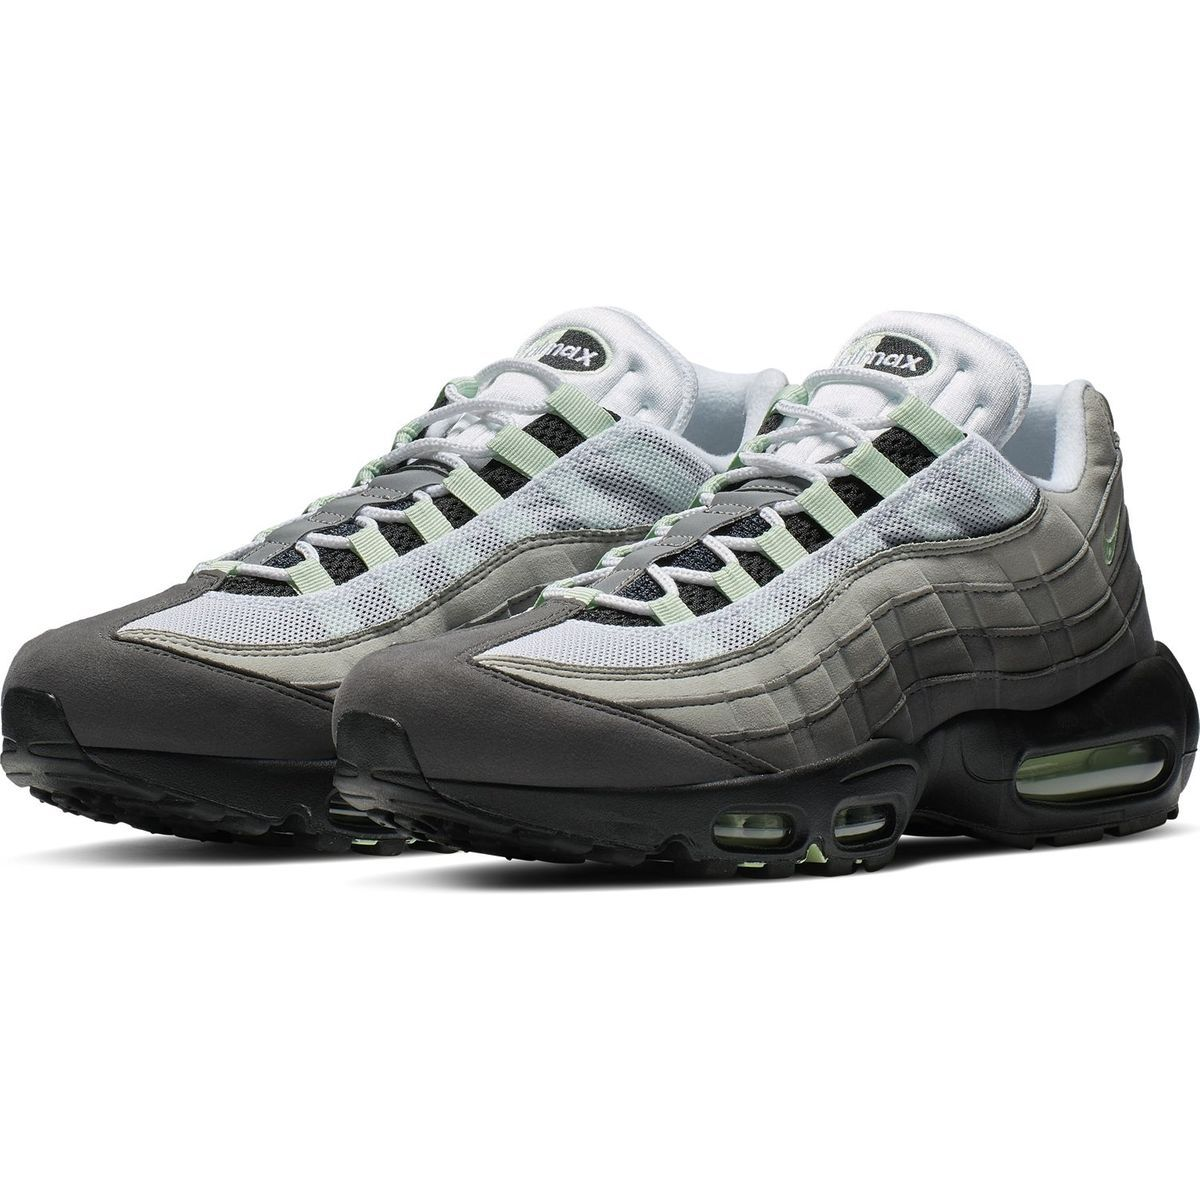 Basket Mode Air Max 95 Taille : 41;42;42 12;43;44;44 12